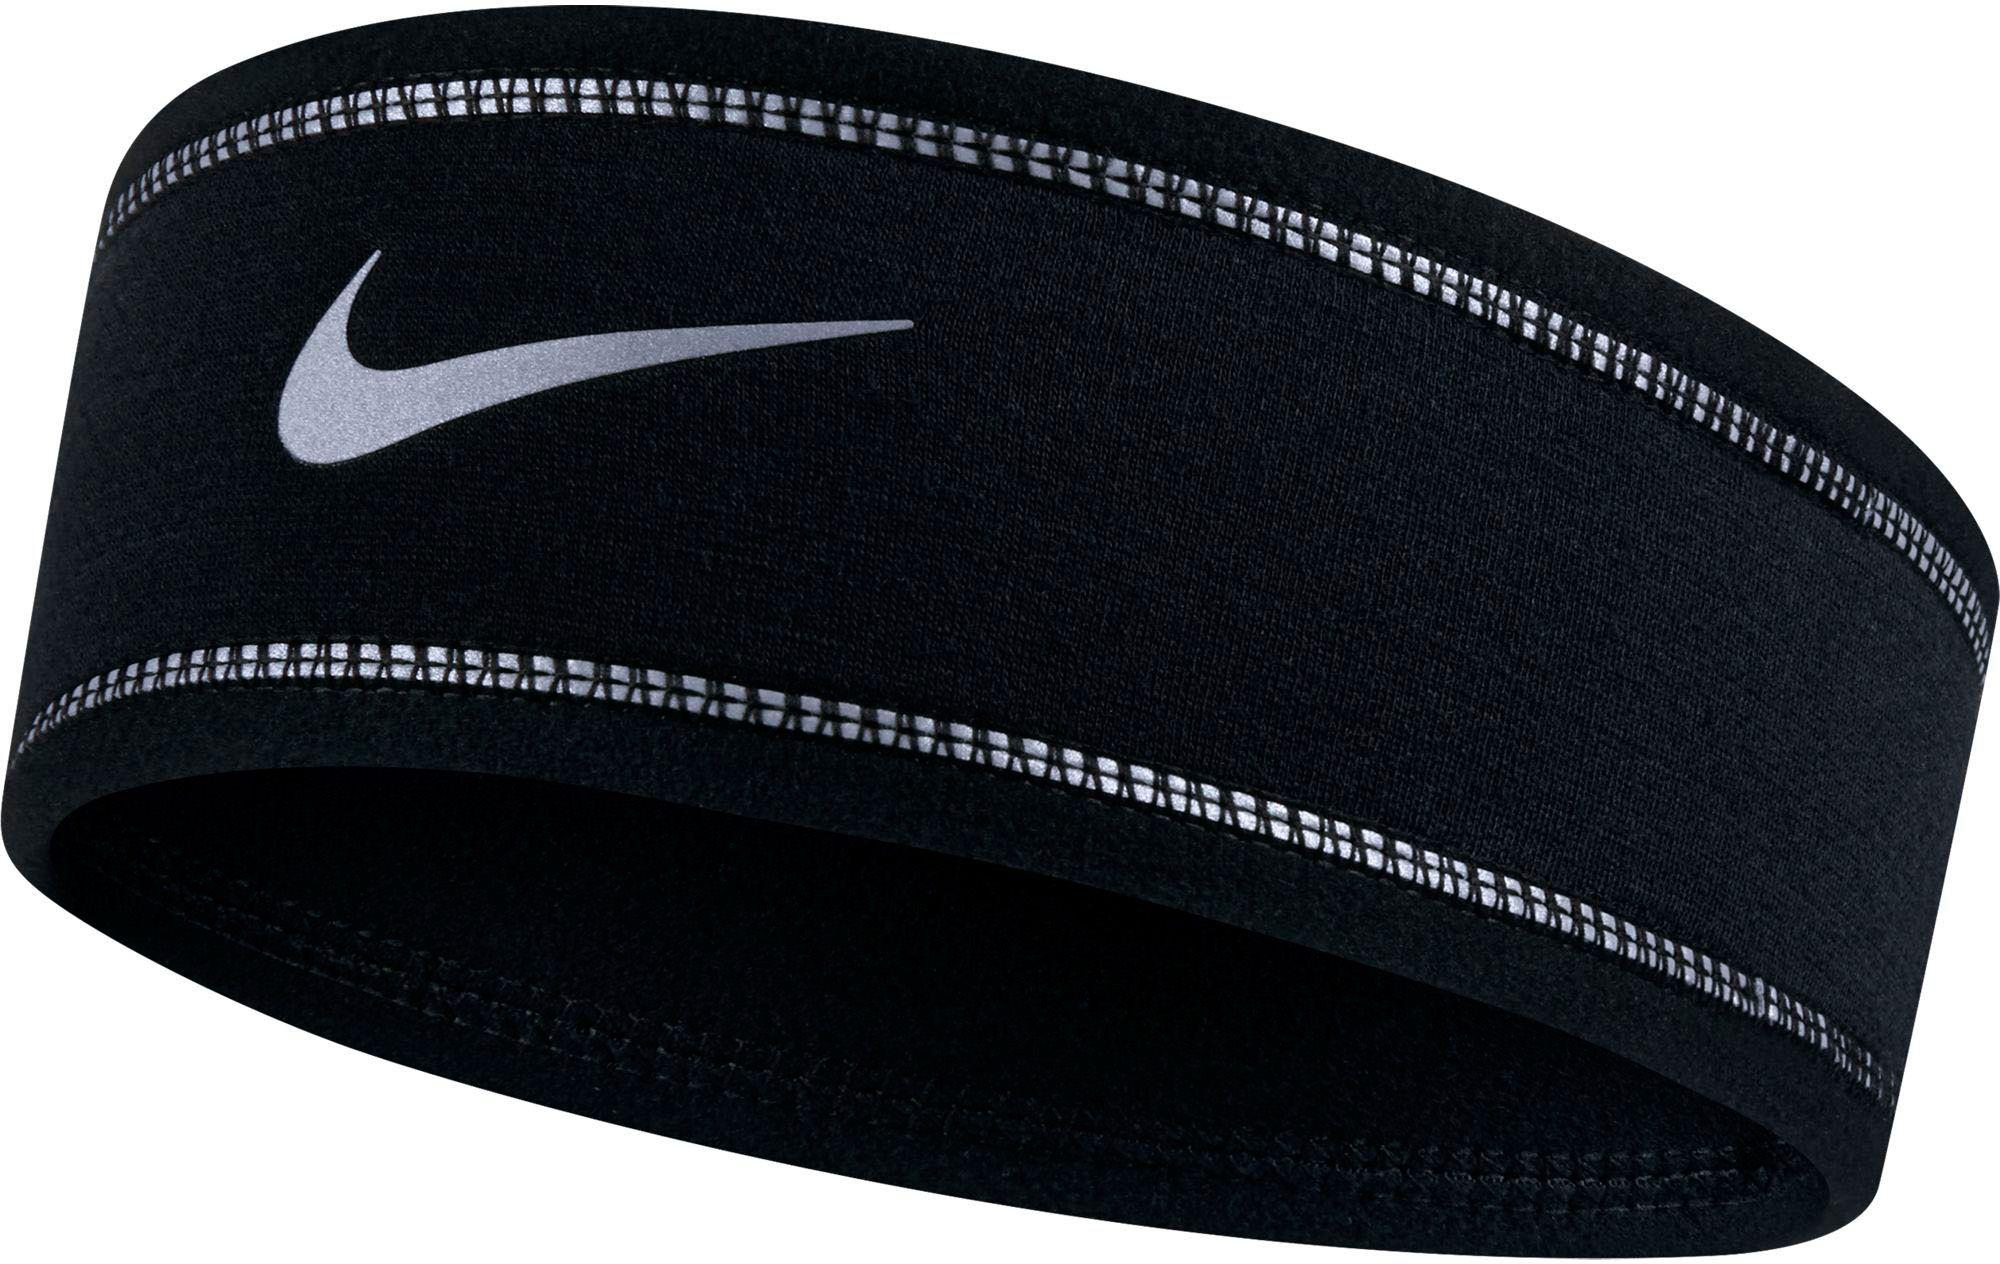 Lyst - Nike Run Flash Running Headband in Black ef5b96c75a2